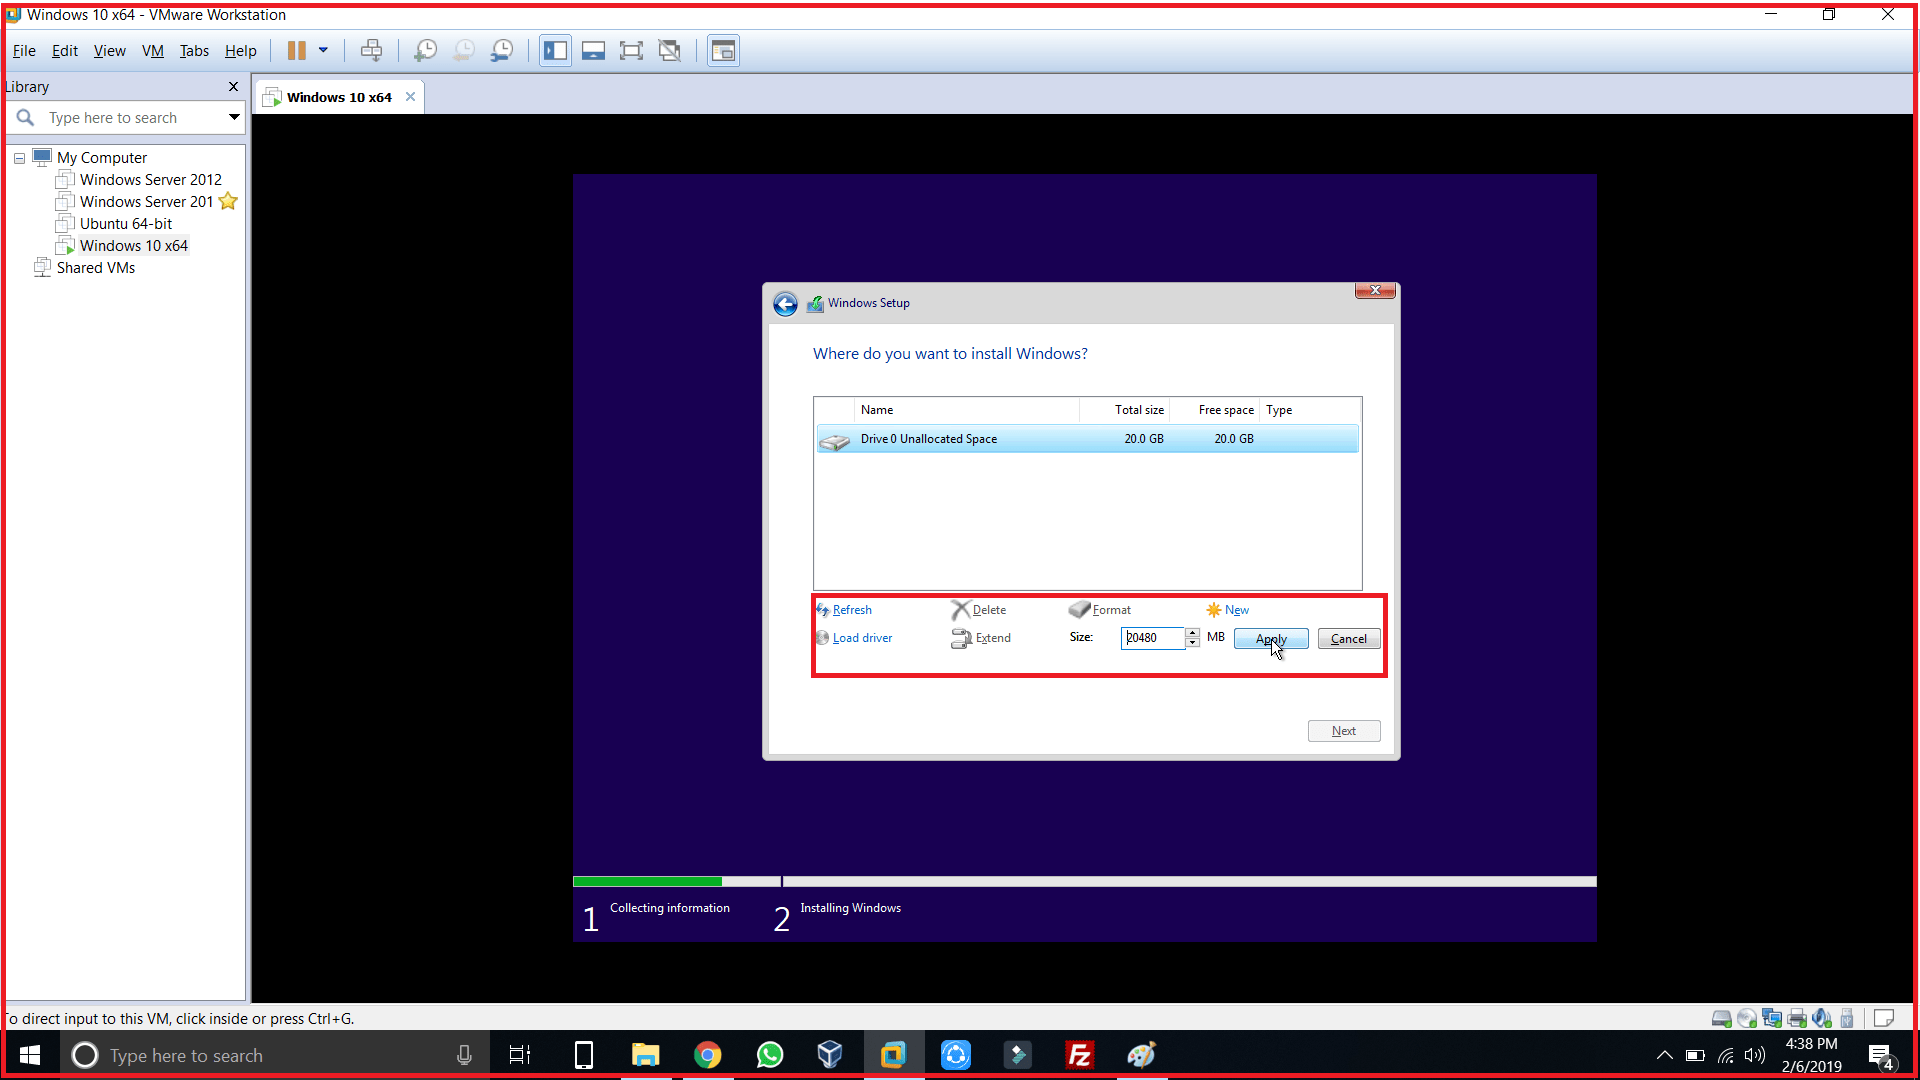 select disk for where you want to install windows